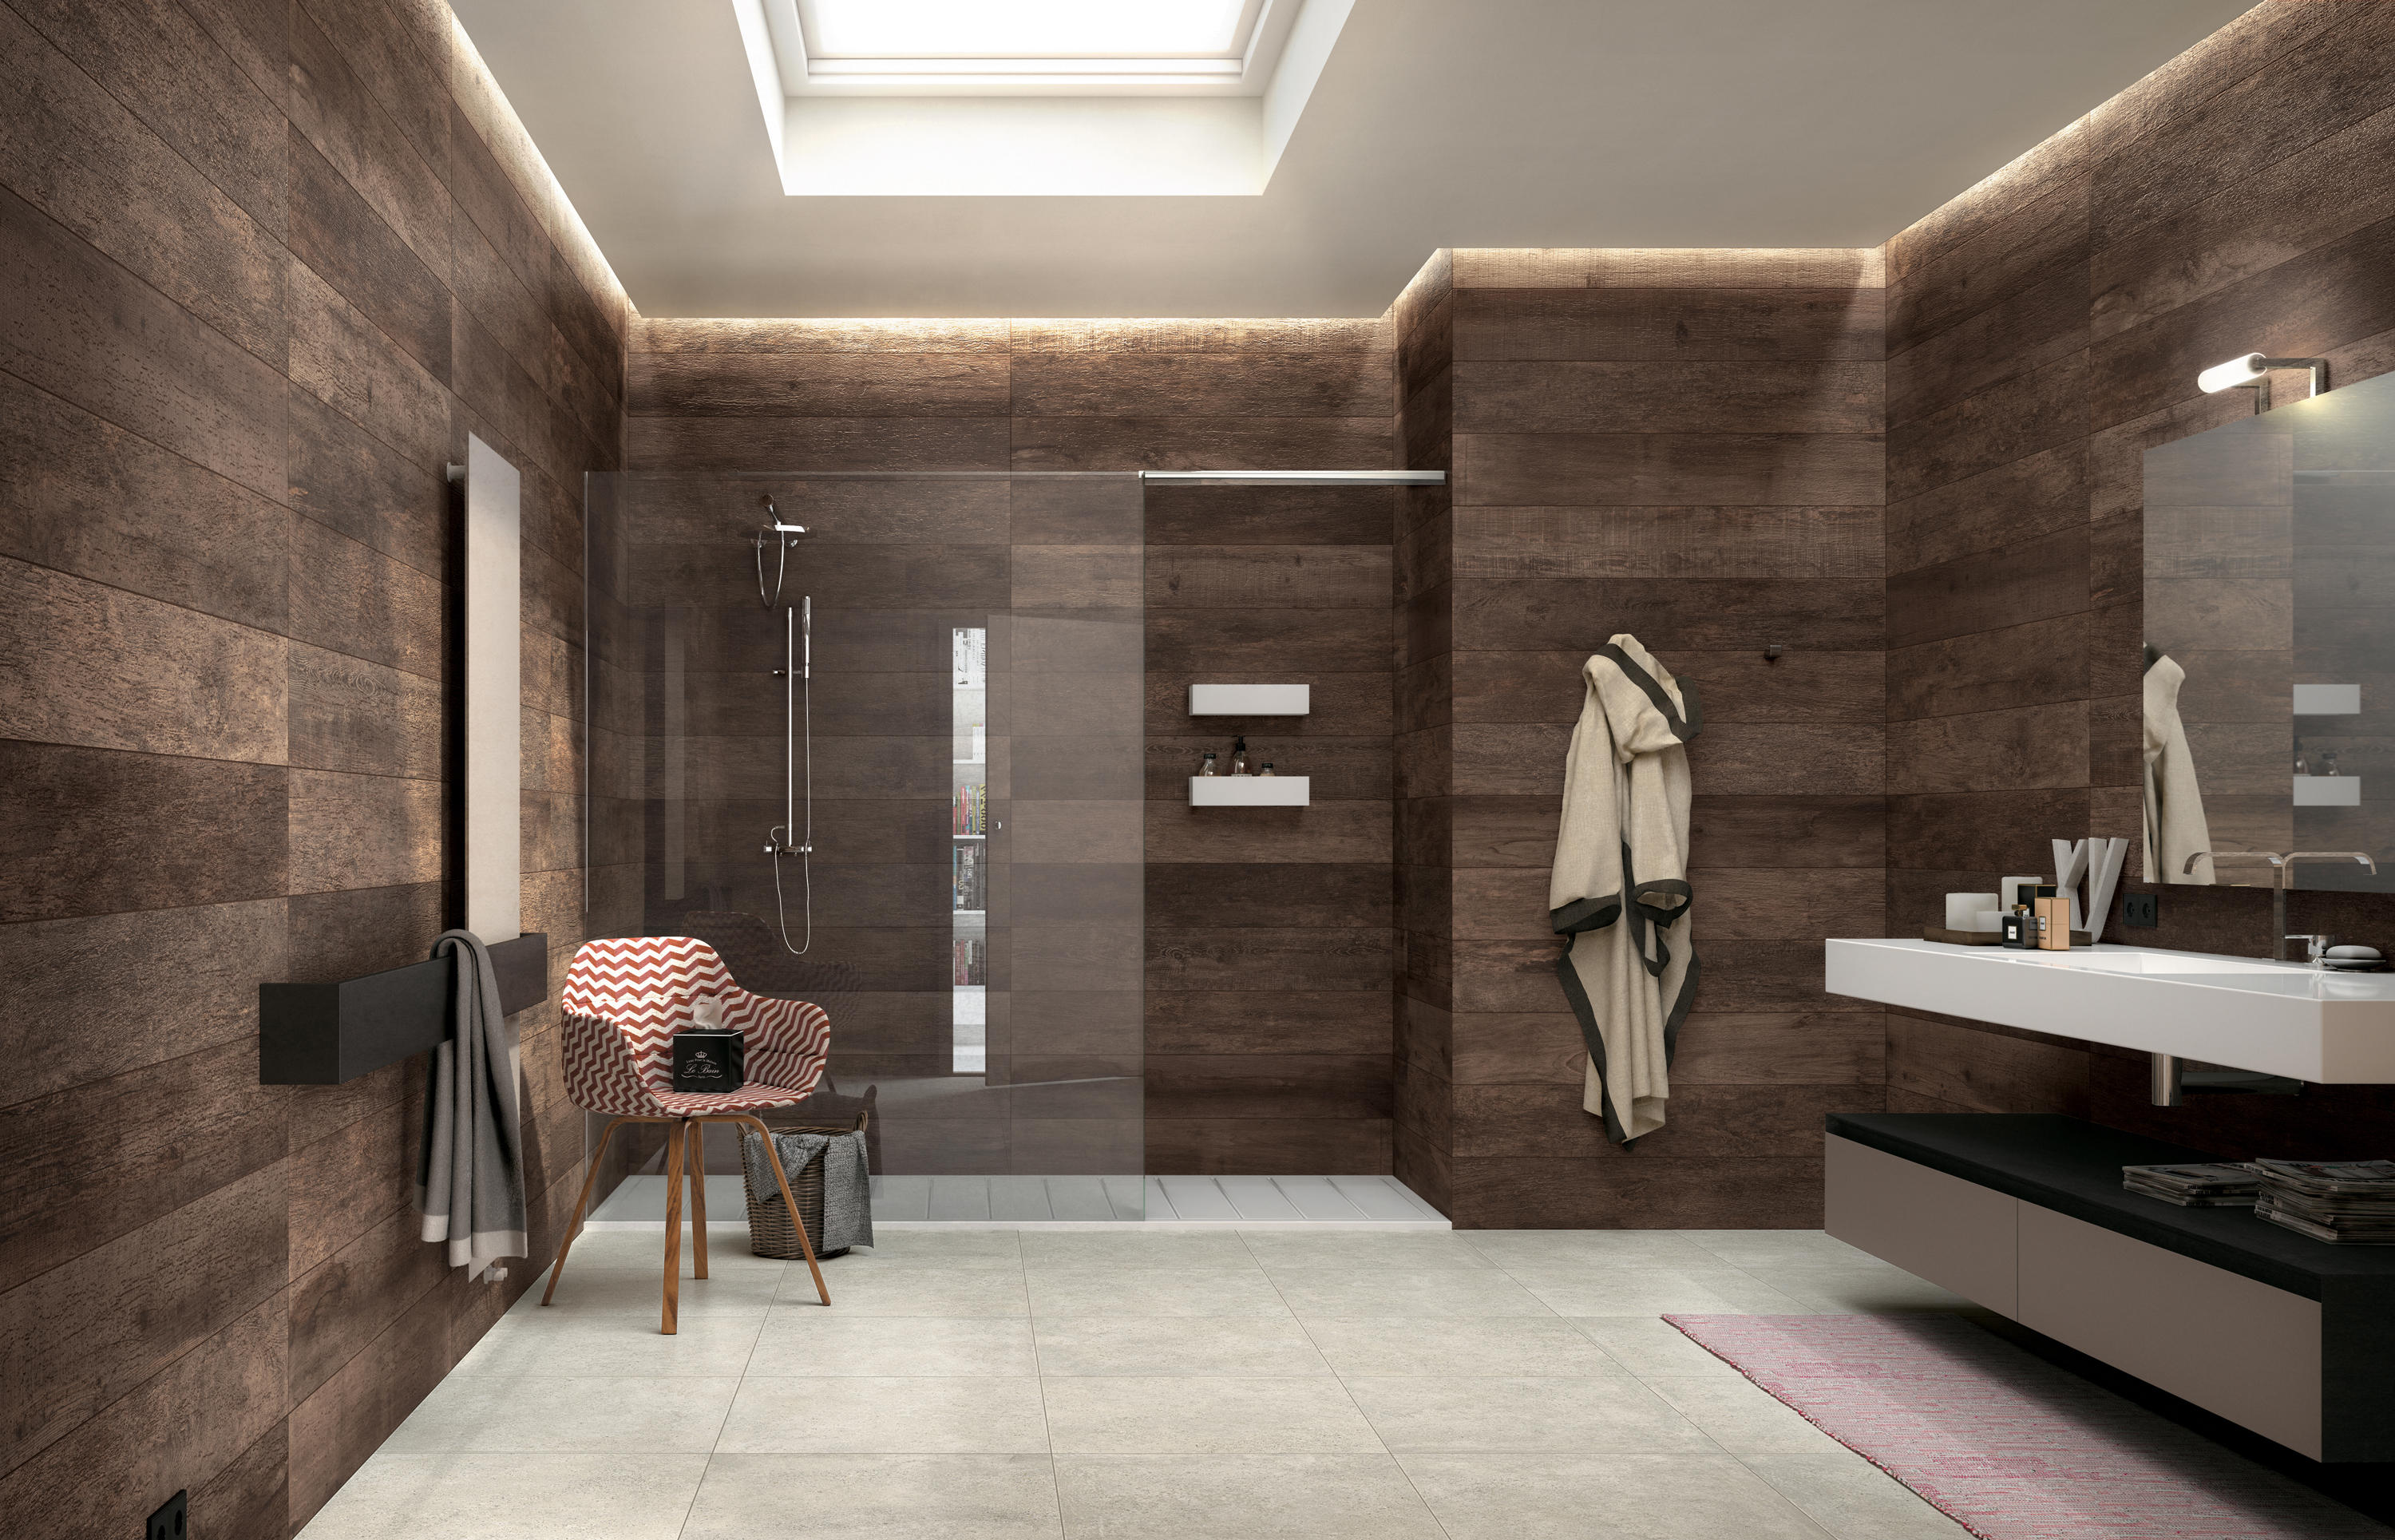 Noon Daylight Nn 01 Ceramic Tiles From Mirage Architonic